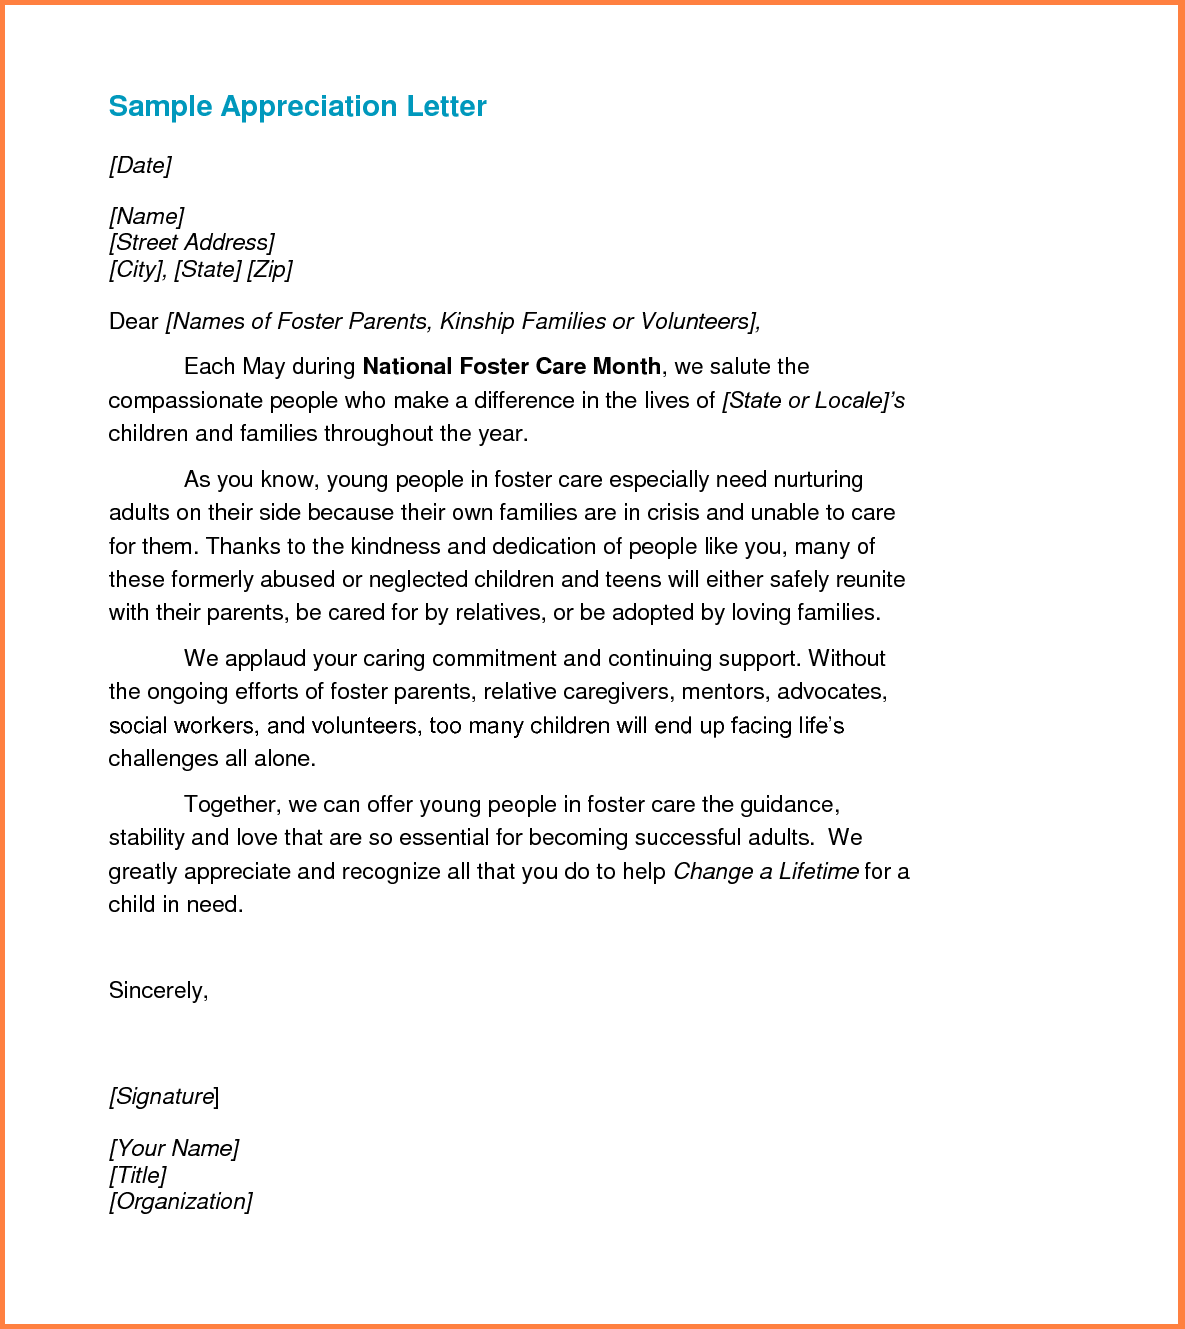 Sample Letter Appreciation Recognition Thank You Letters For